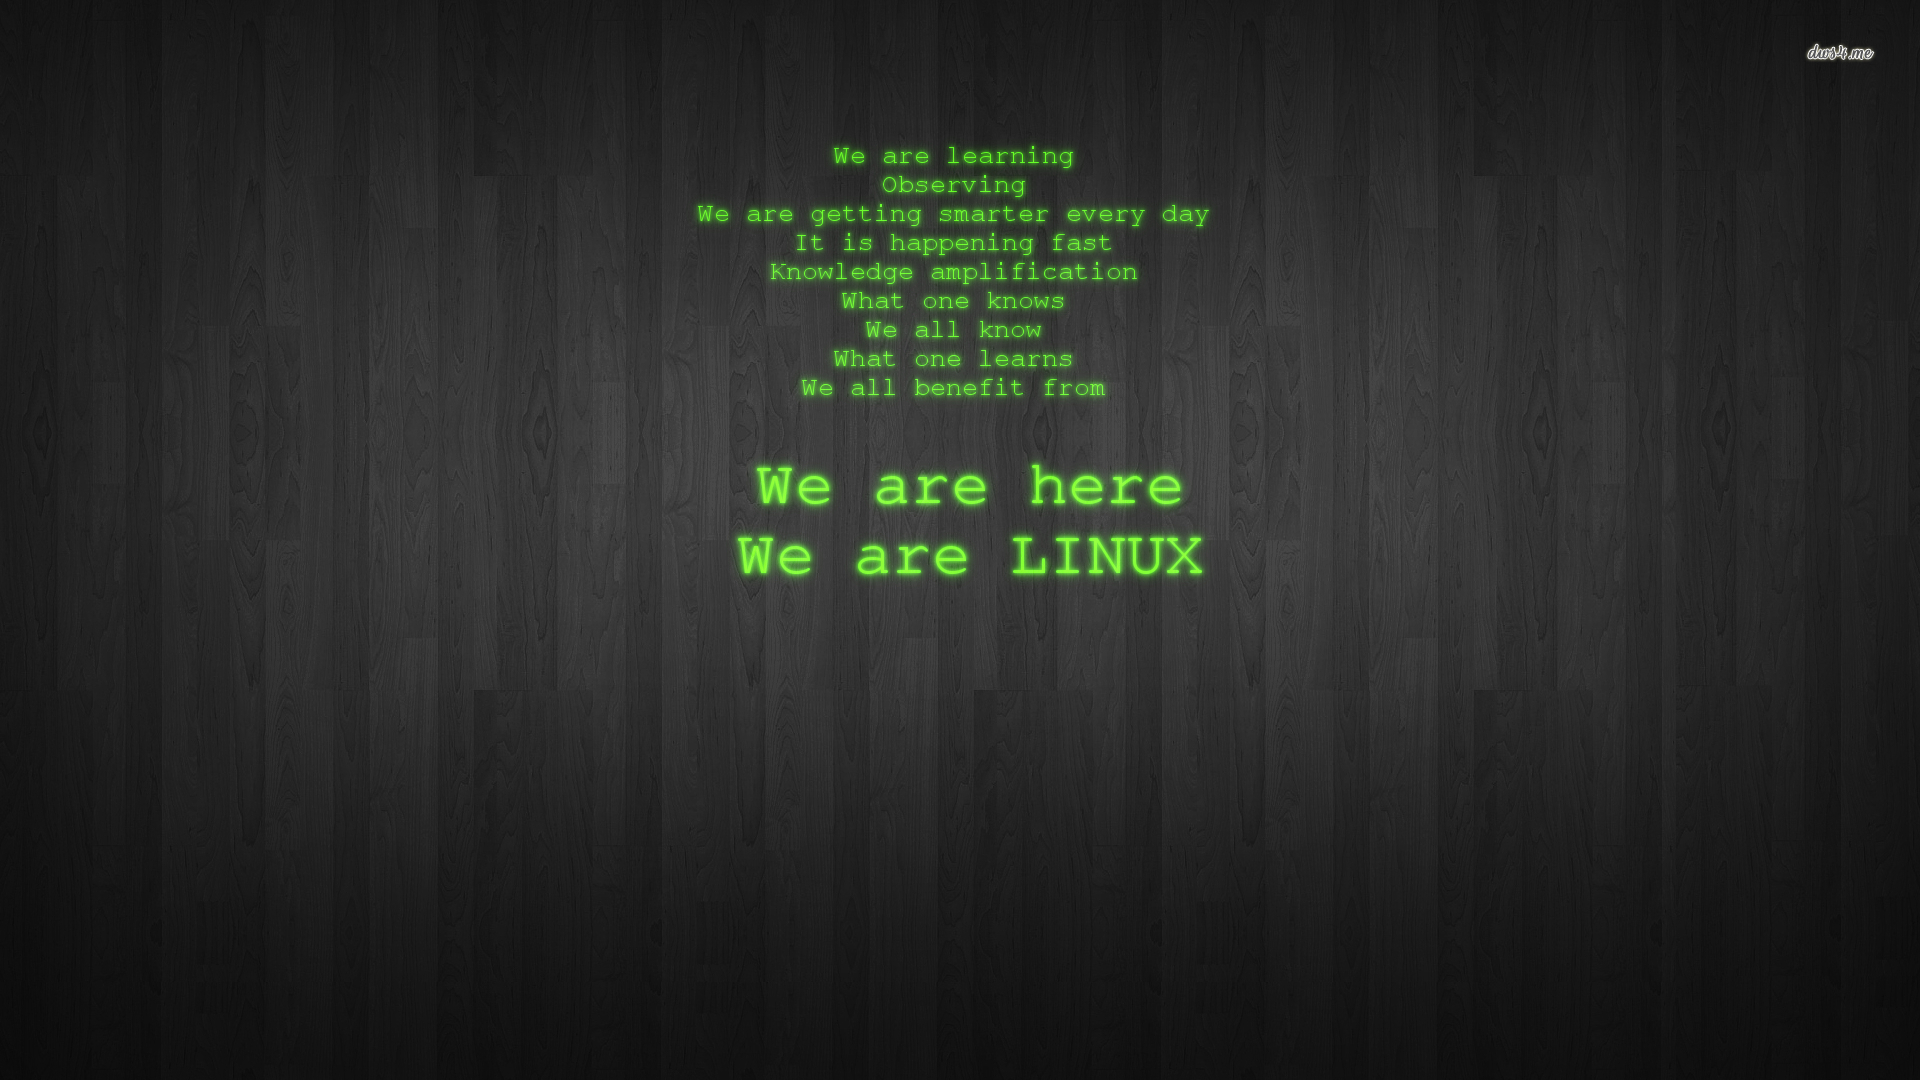 Group Of Linux Wallpaper 1920x1080